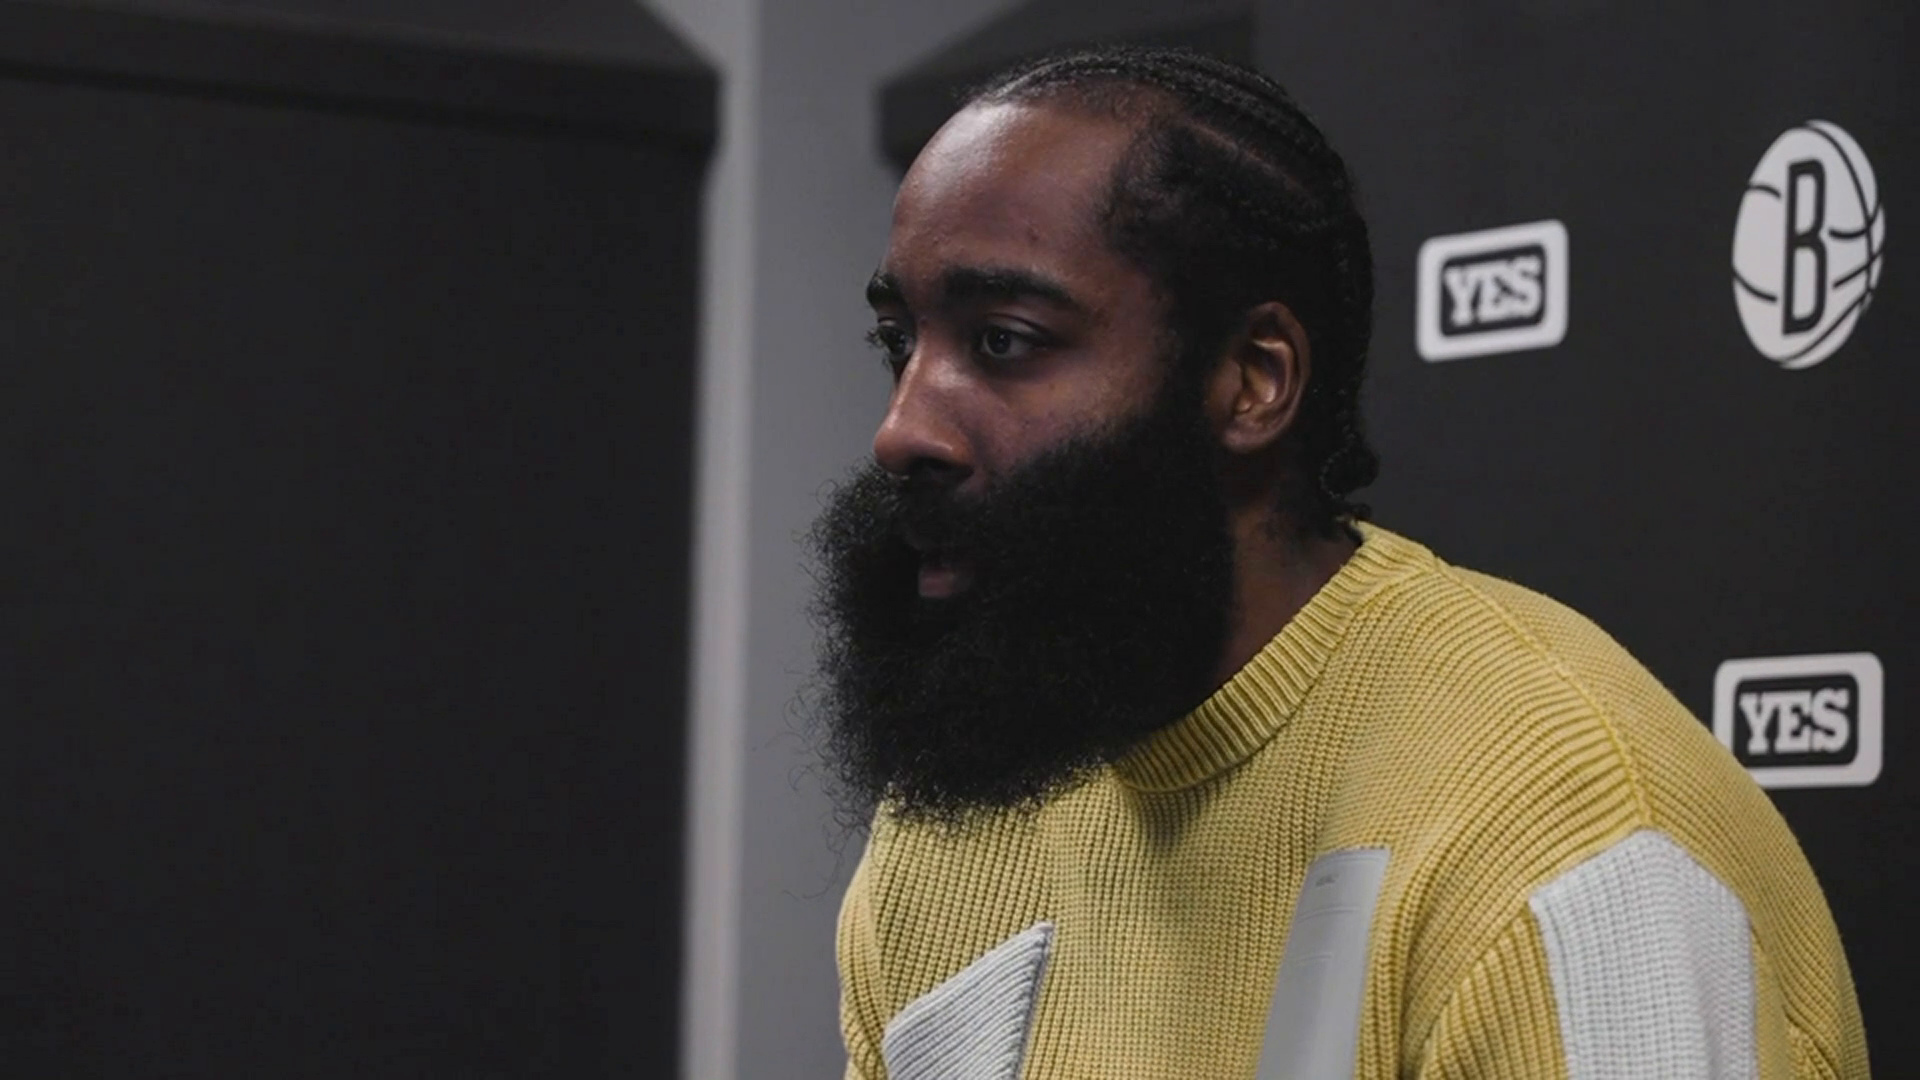 Harden honored being named to the NBA 75th Anniversary Team